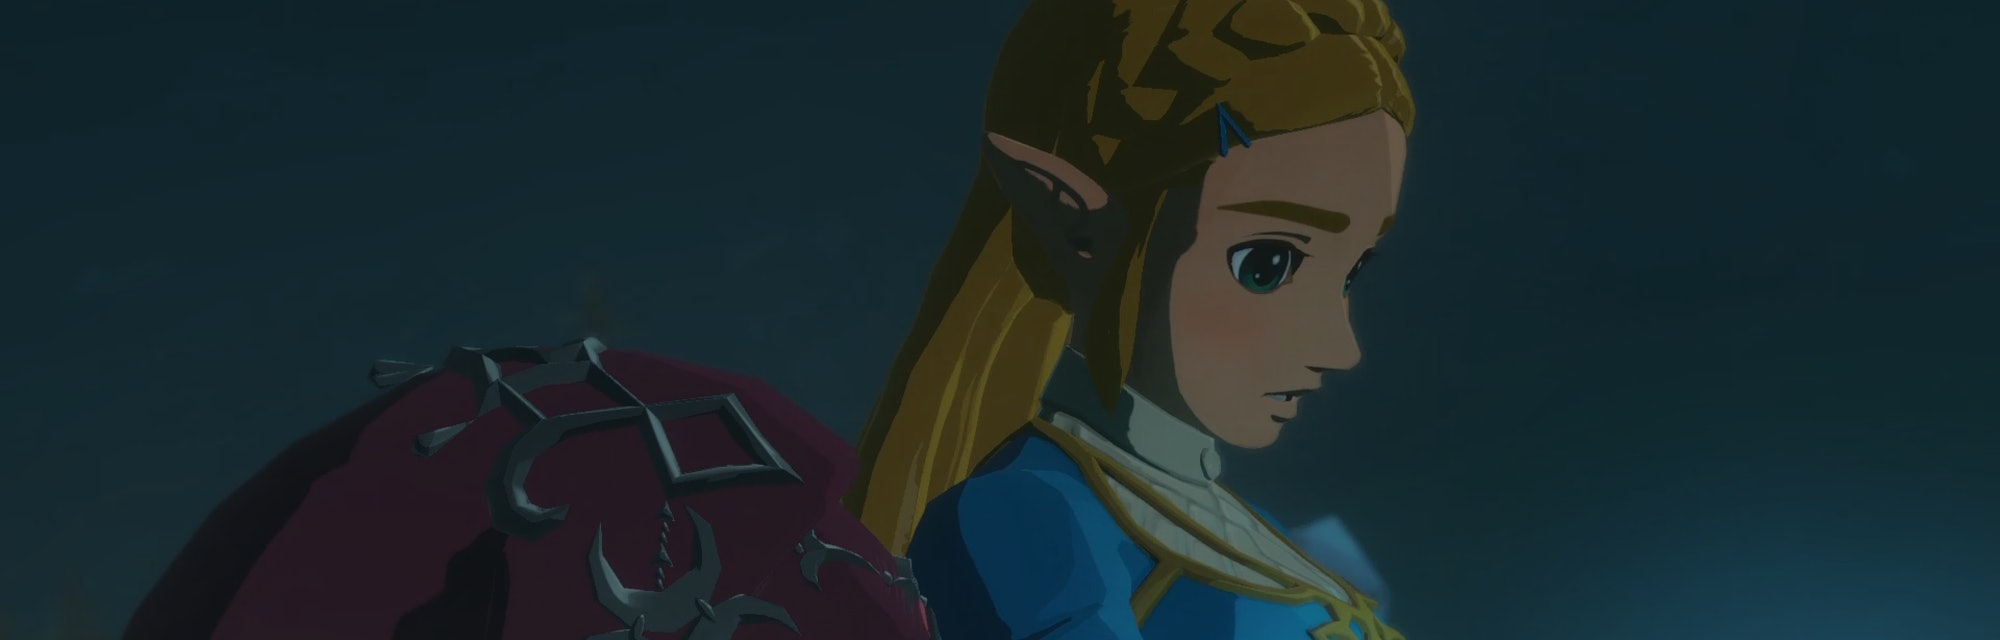 Breath Of The Wild 2 Release Date What New Hyrule Warriors Reveals